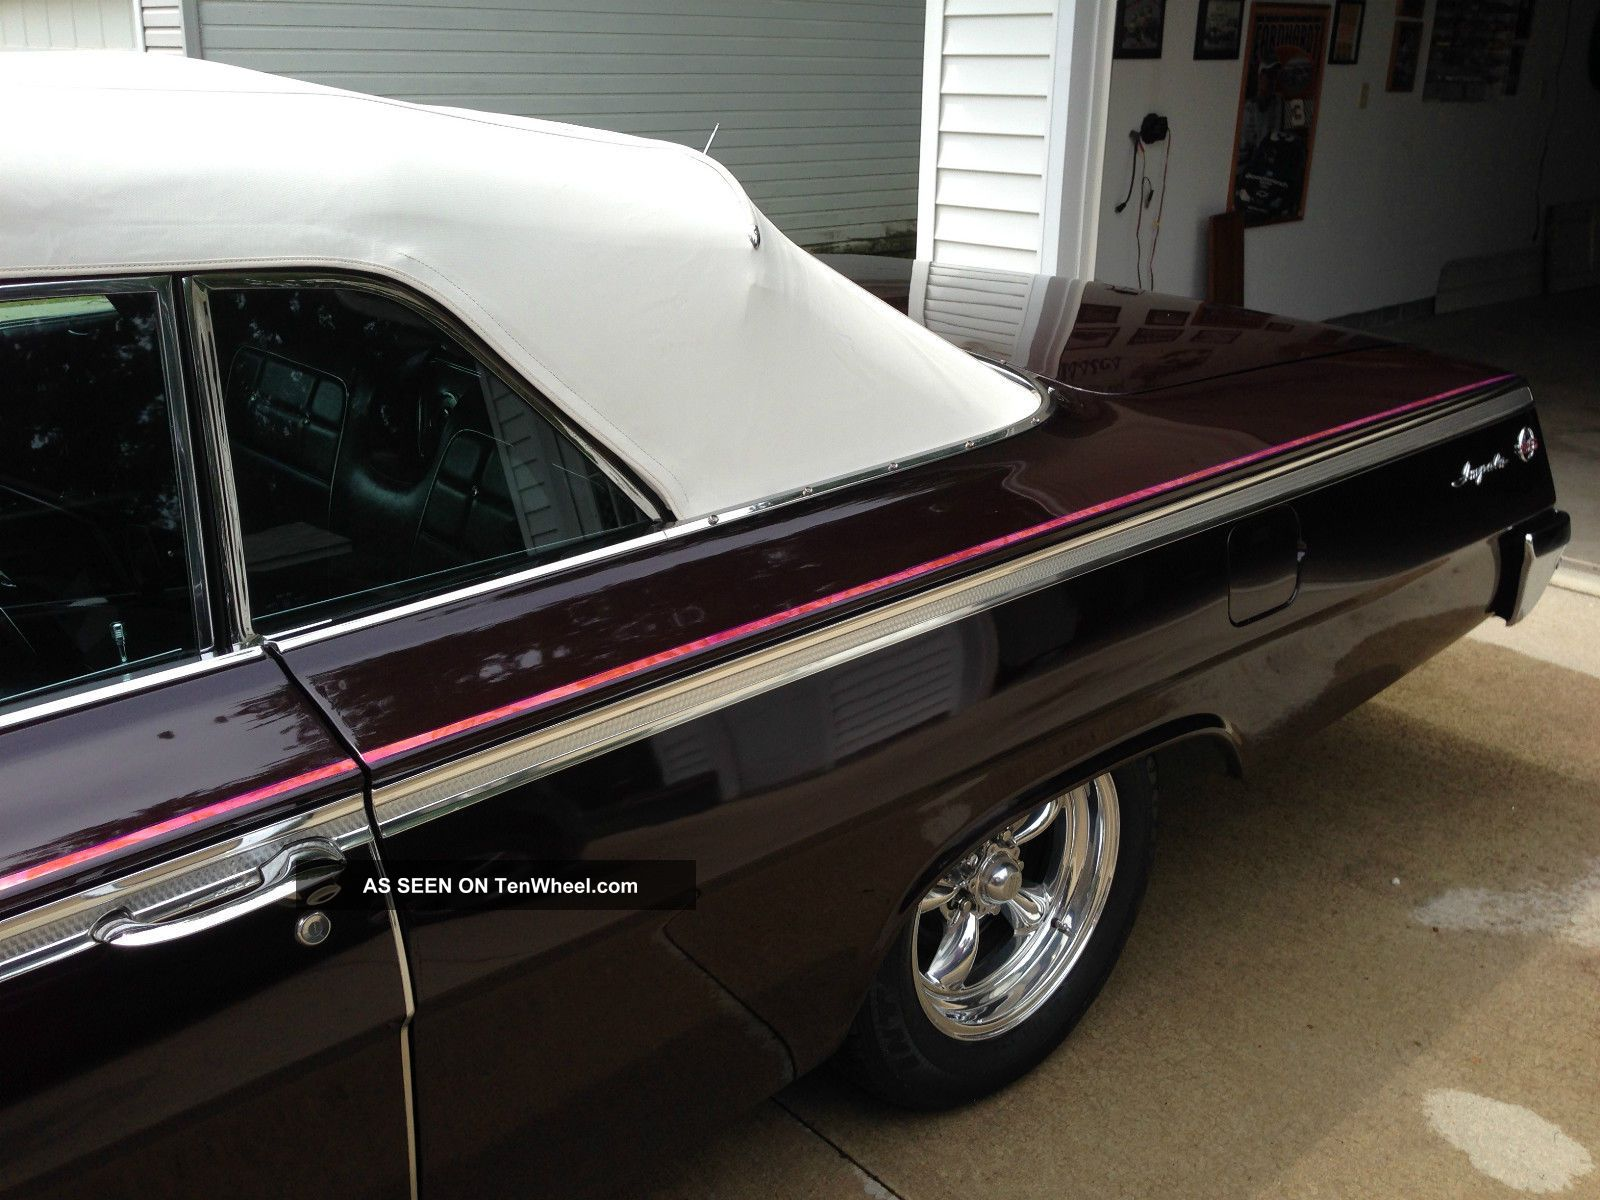 1962 Chevy Impala Covertable 409 / 409 Impala photo